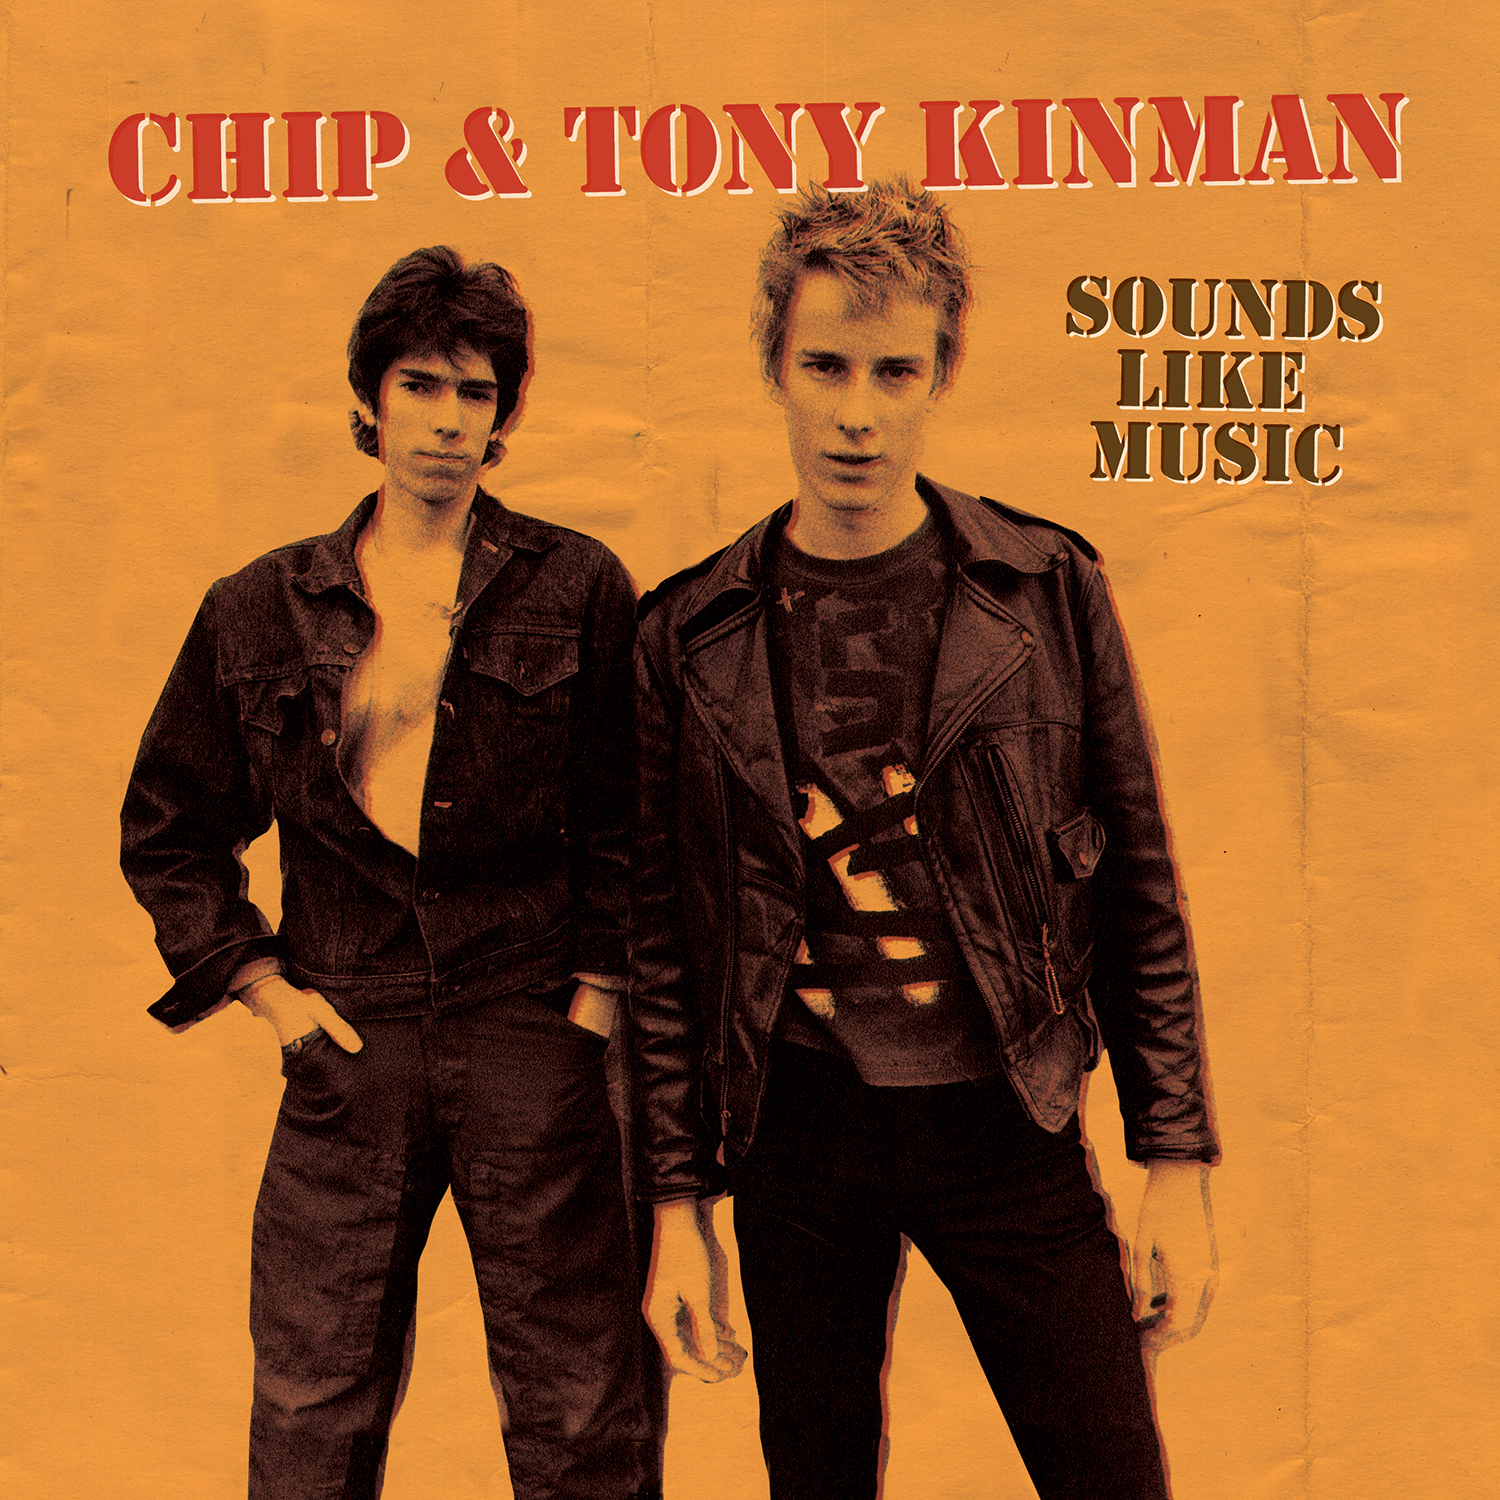 Chip & Tony Kinman - Sounds Like Music  Release Date: June 28, 2019 Label: Omnivore Recordings  SERVICE: Mastering, Restoration NUMBER OF DISCS: 1 GENRE: Punk, Country, Electronic FORMAT: CD